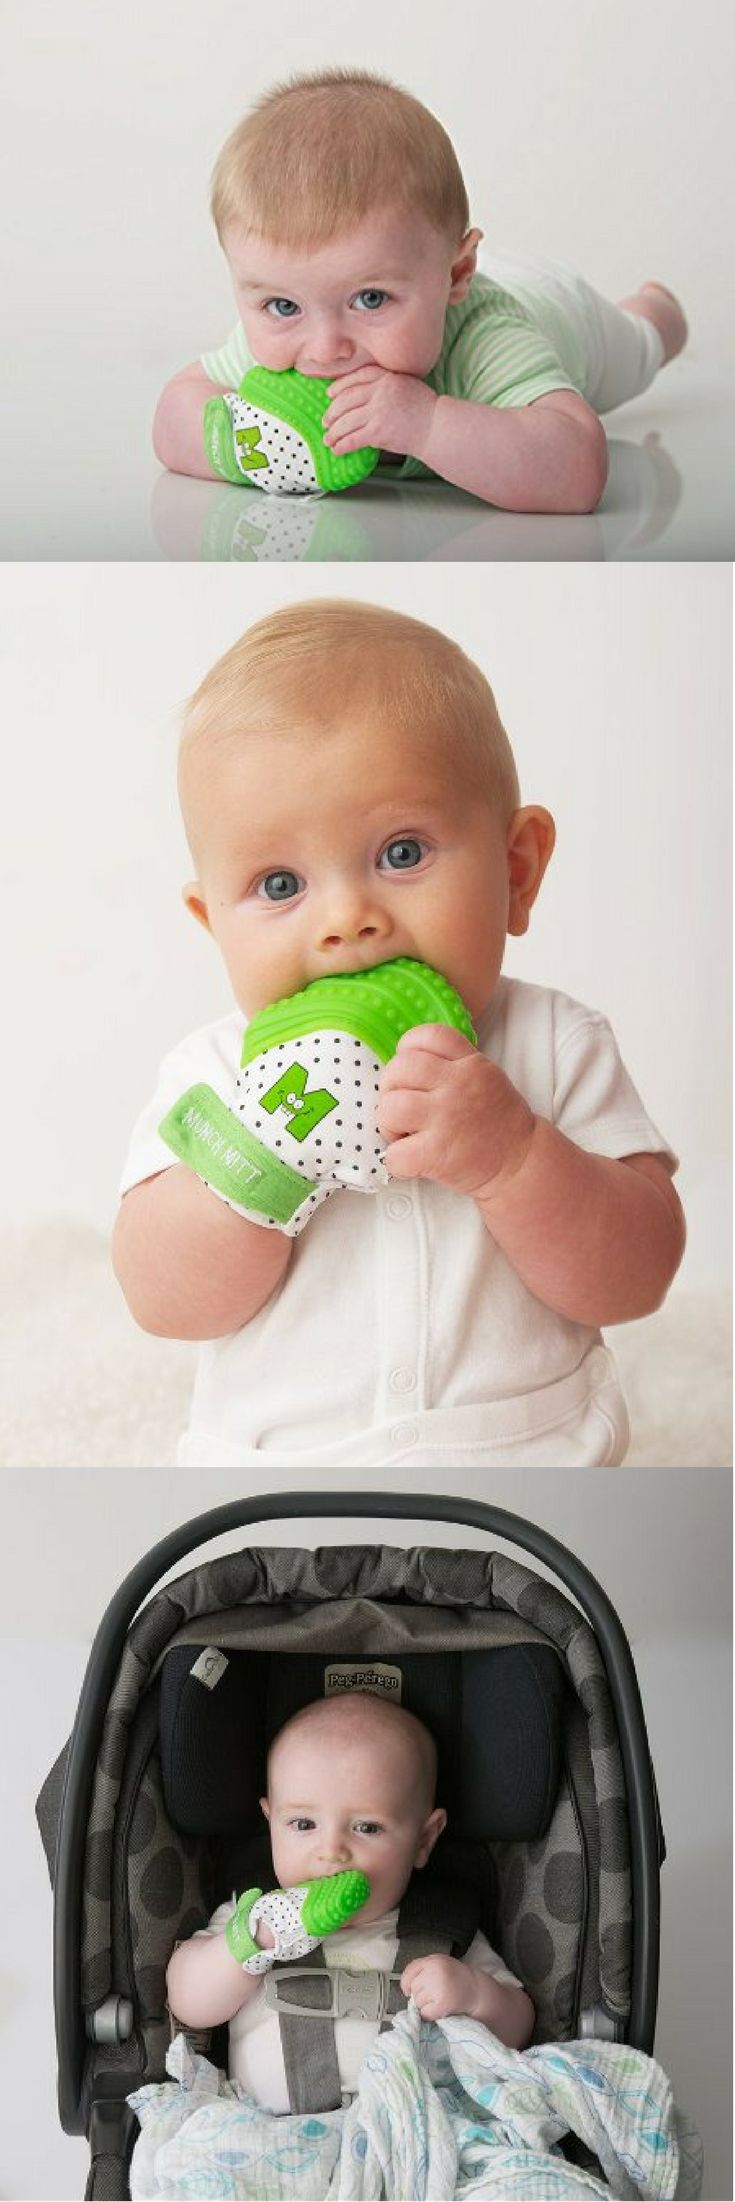 The best baby teething toy! The Munch Mitt is a great way to keep teething toys from falling onto the ground! Provides a ton of relief for baby teething pains with soothing silicon bumps! So cool!